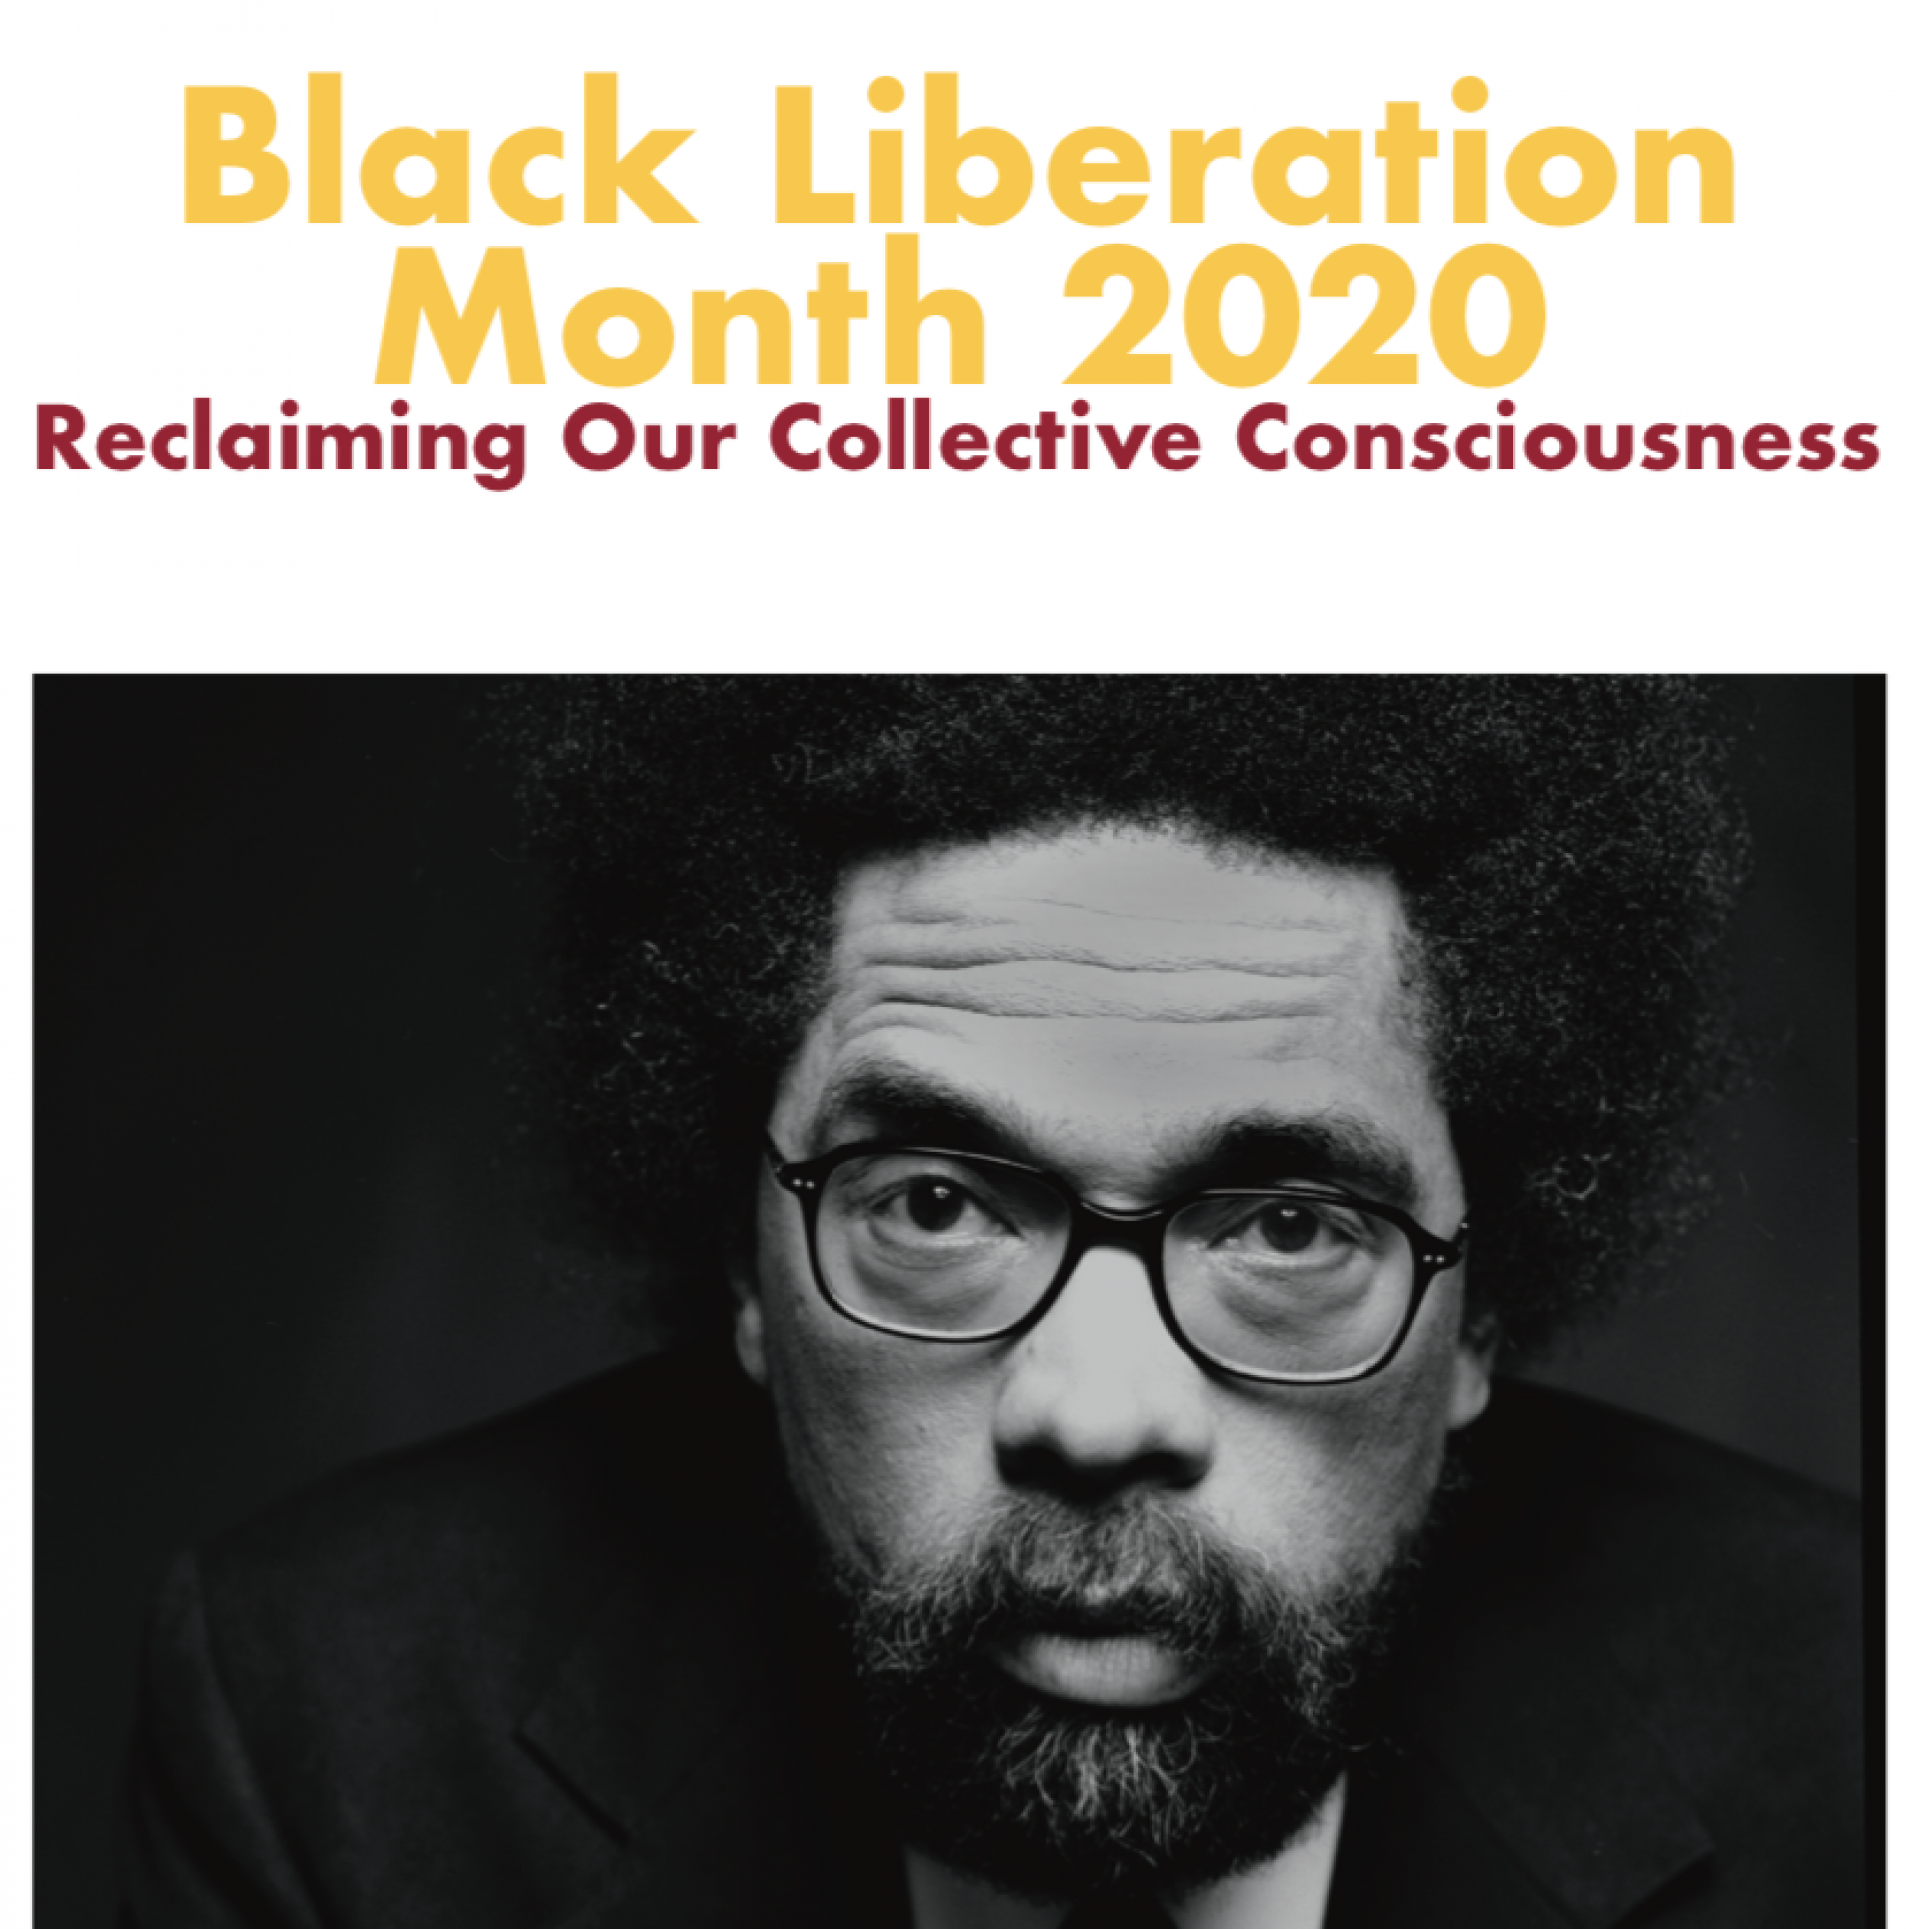 Crop of the Humboldt State University Black Liberation Month 2020 poster